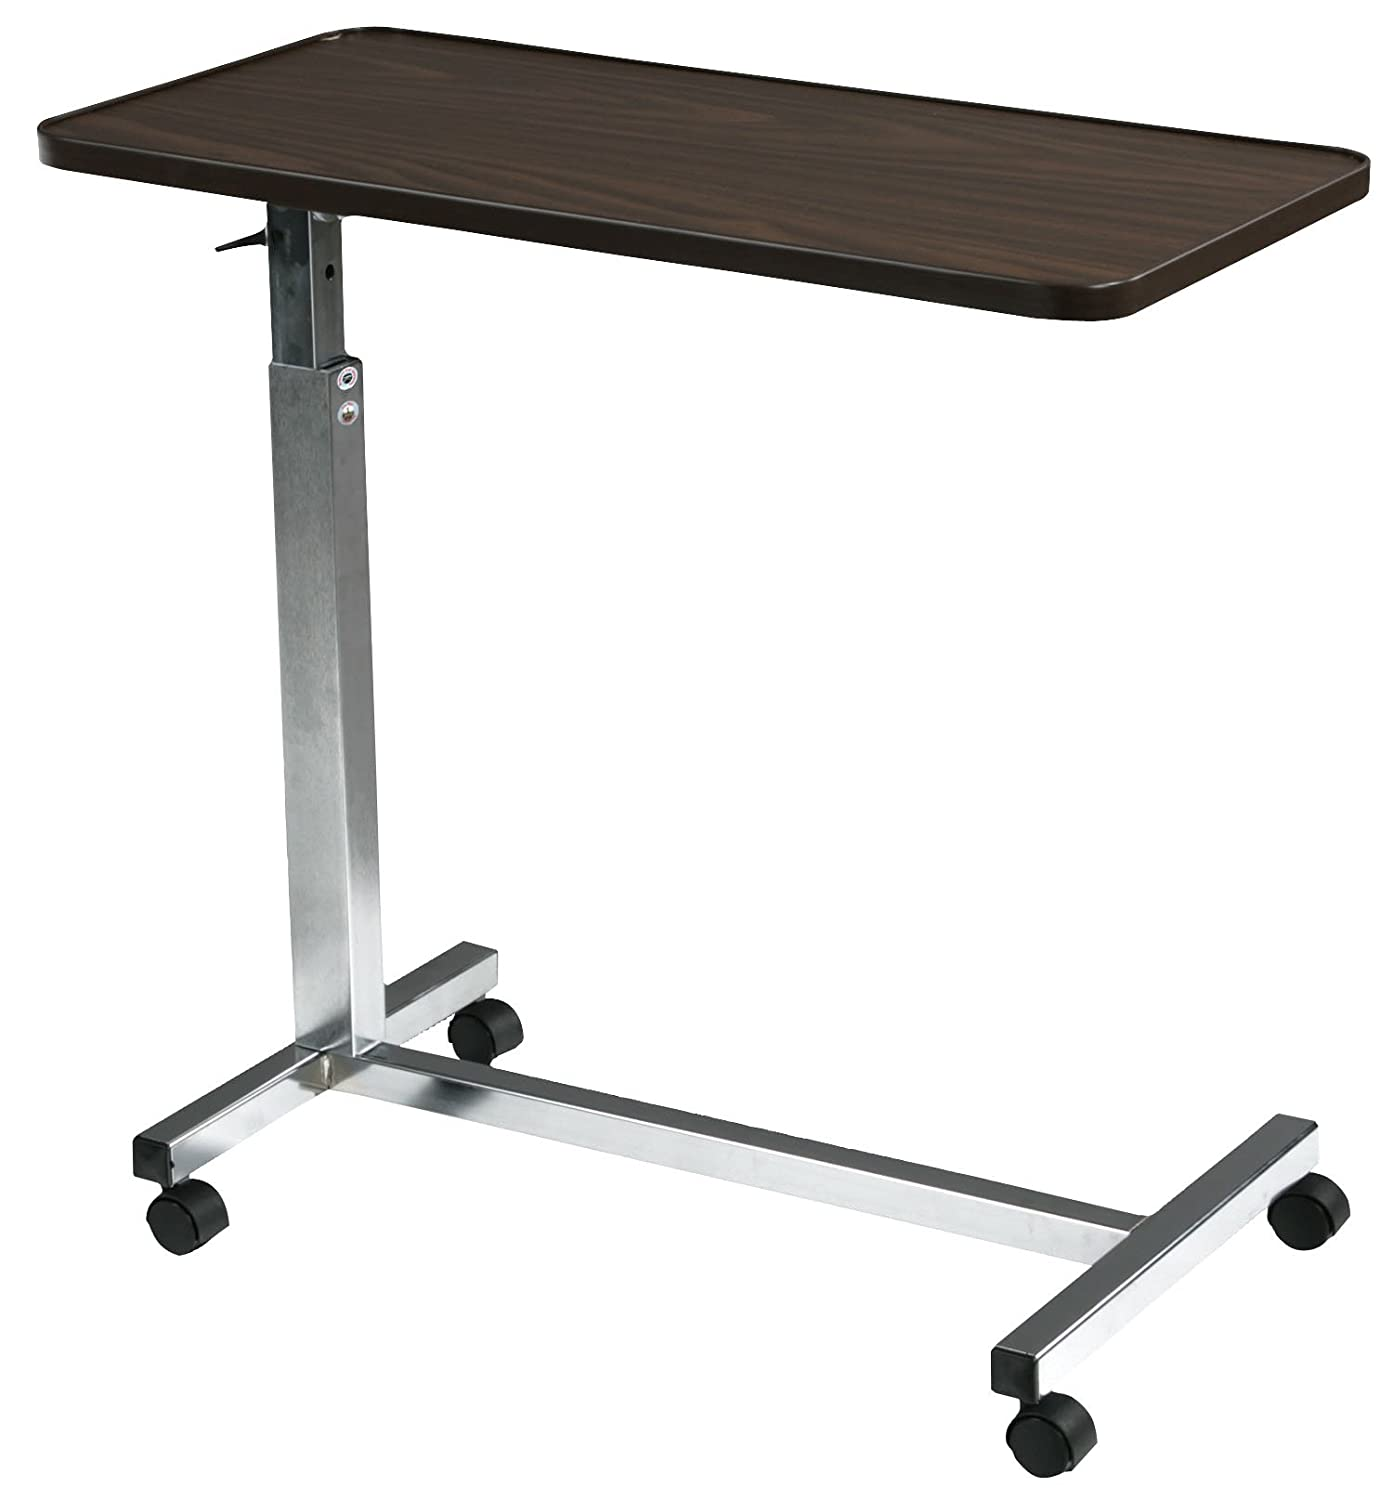 Overbed table food tray non tilt top bed hospital adjustable rolling - Amazon Com Drive Medical Non Tilt Top Overbed Table Chrome Health Personal Care